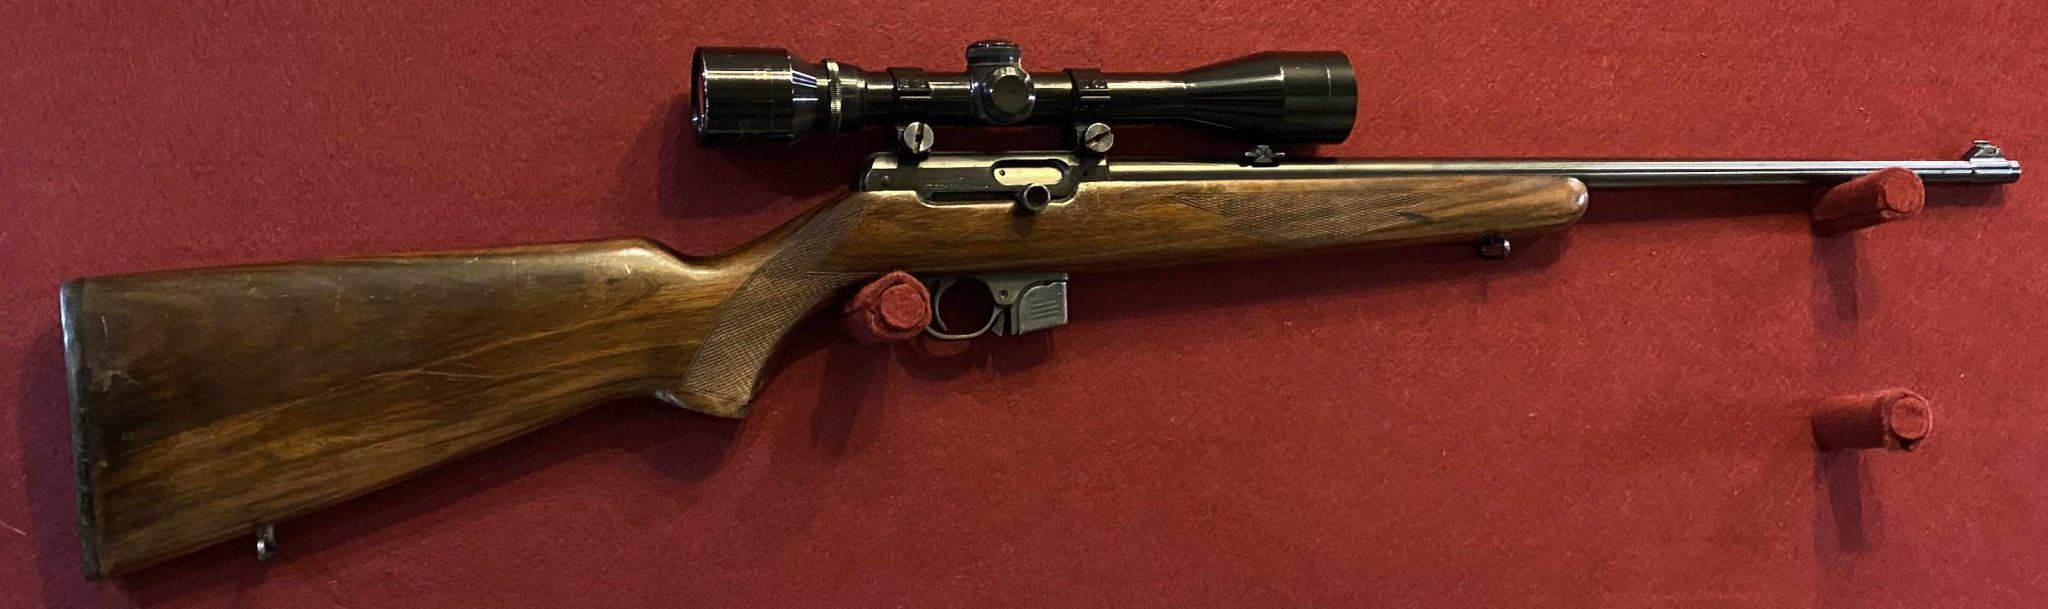 used rifles for sale cz